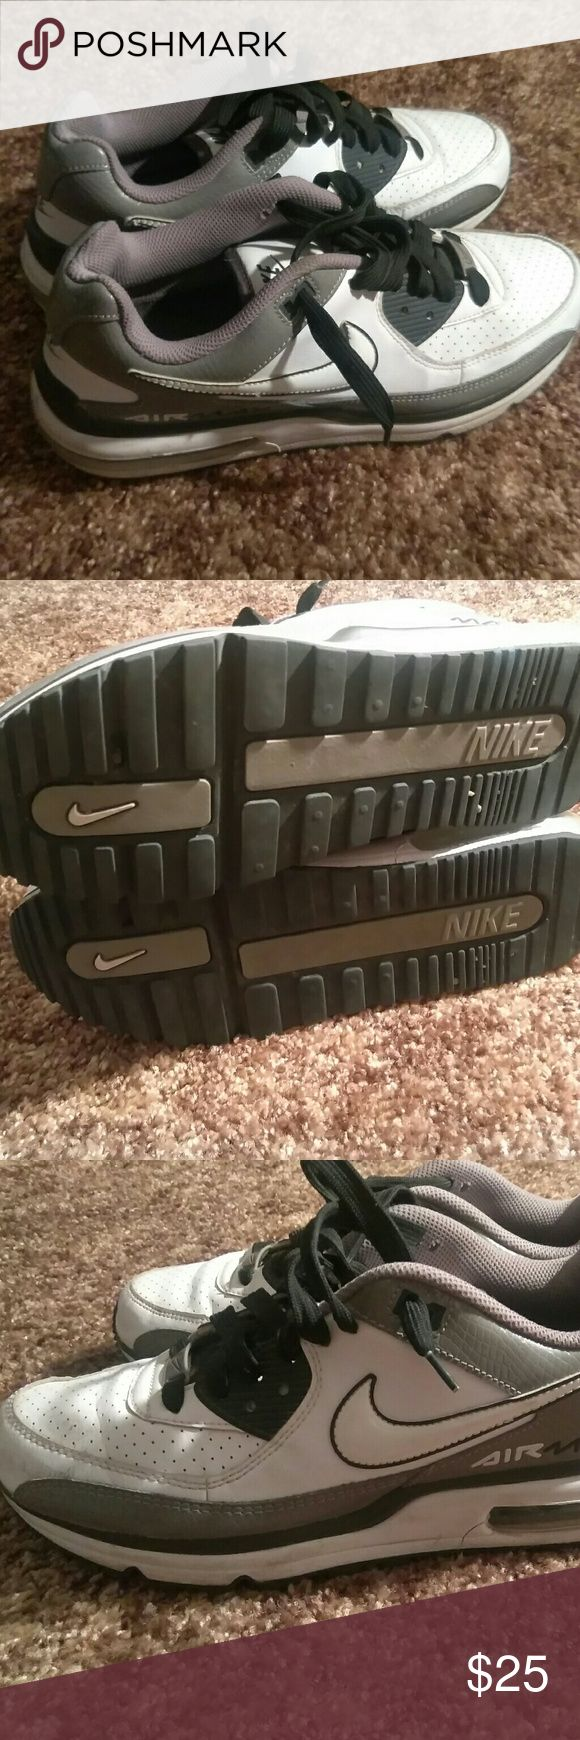 Nike air max wright size 9 Used as is in good condition nike Shoes